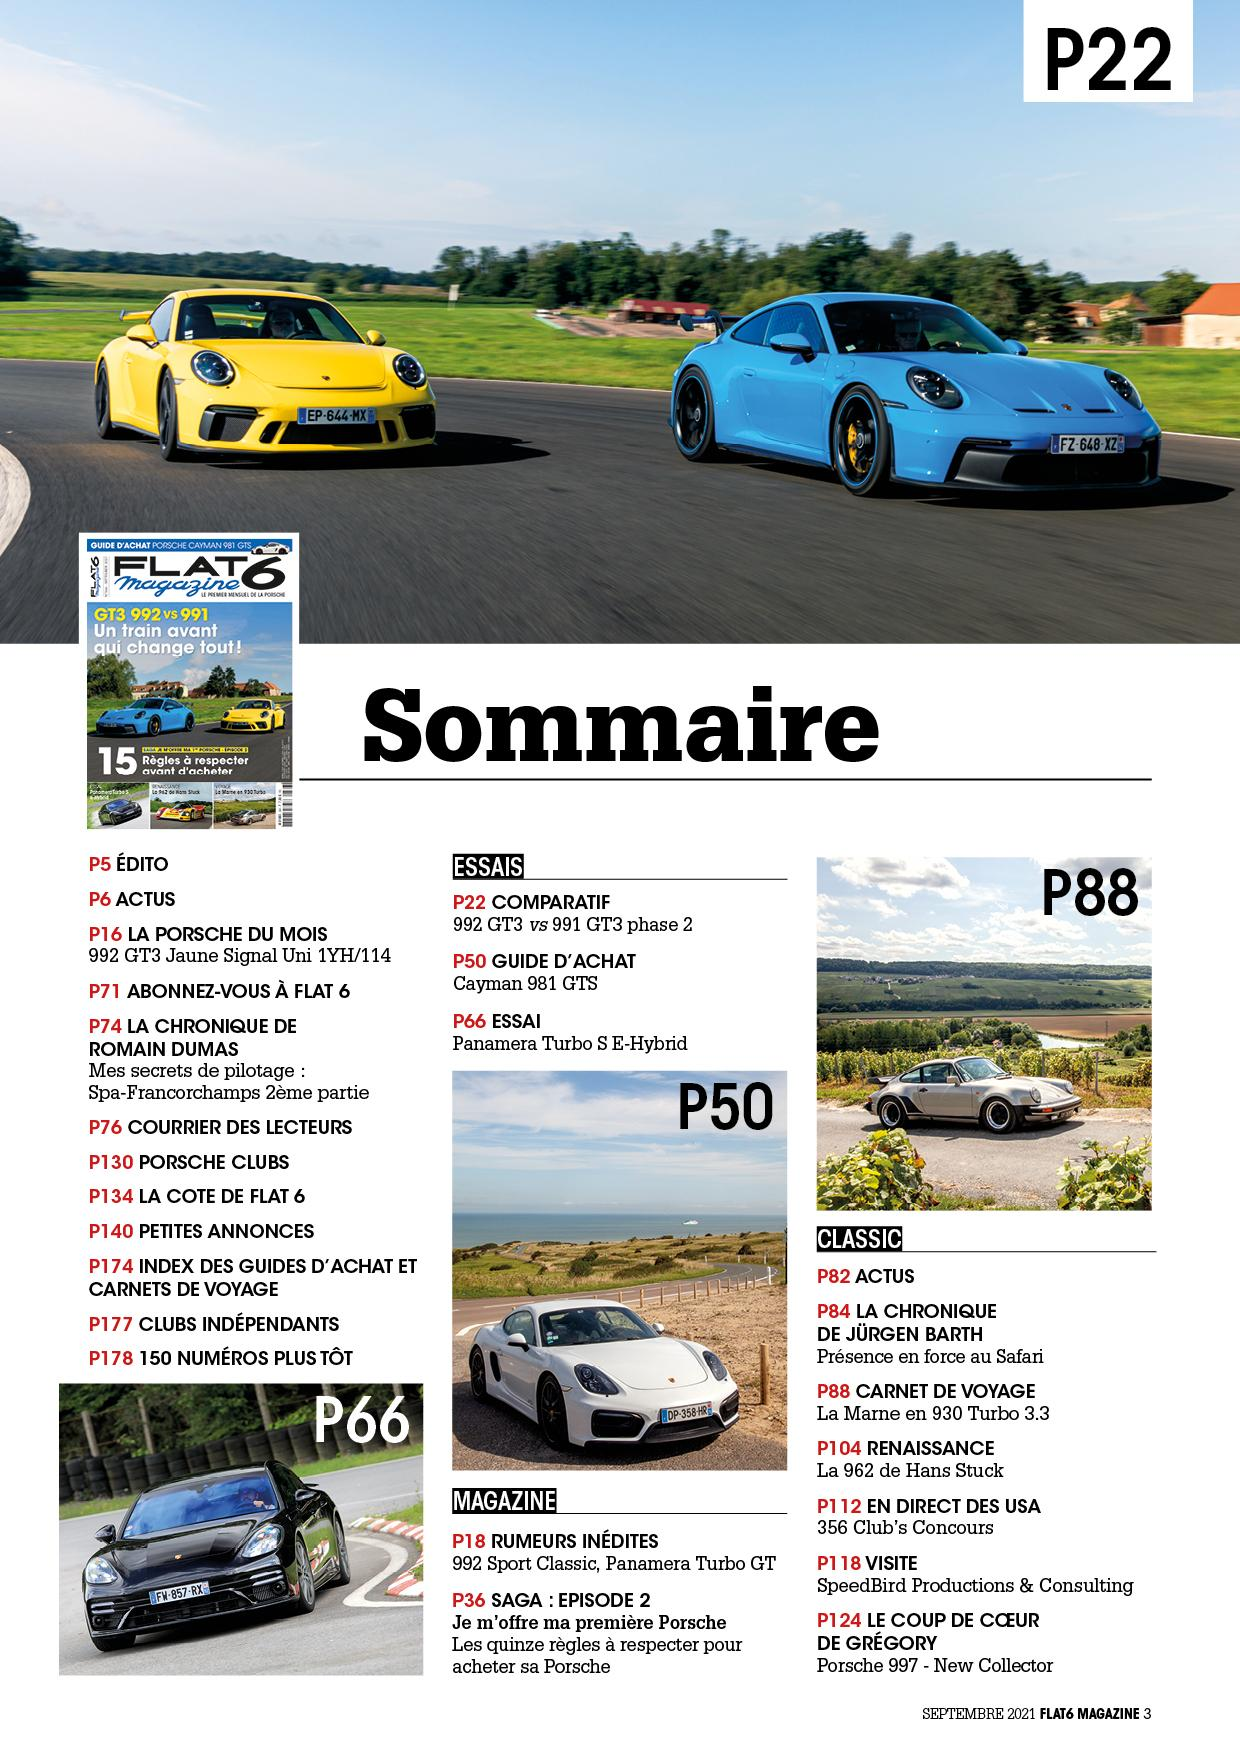 Sommaire366